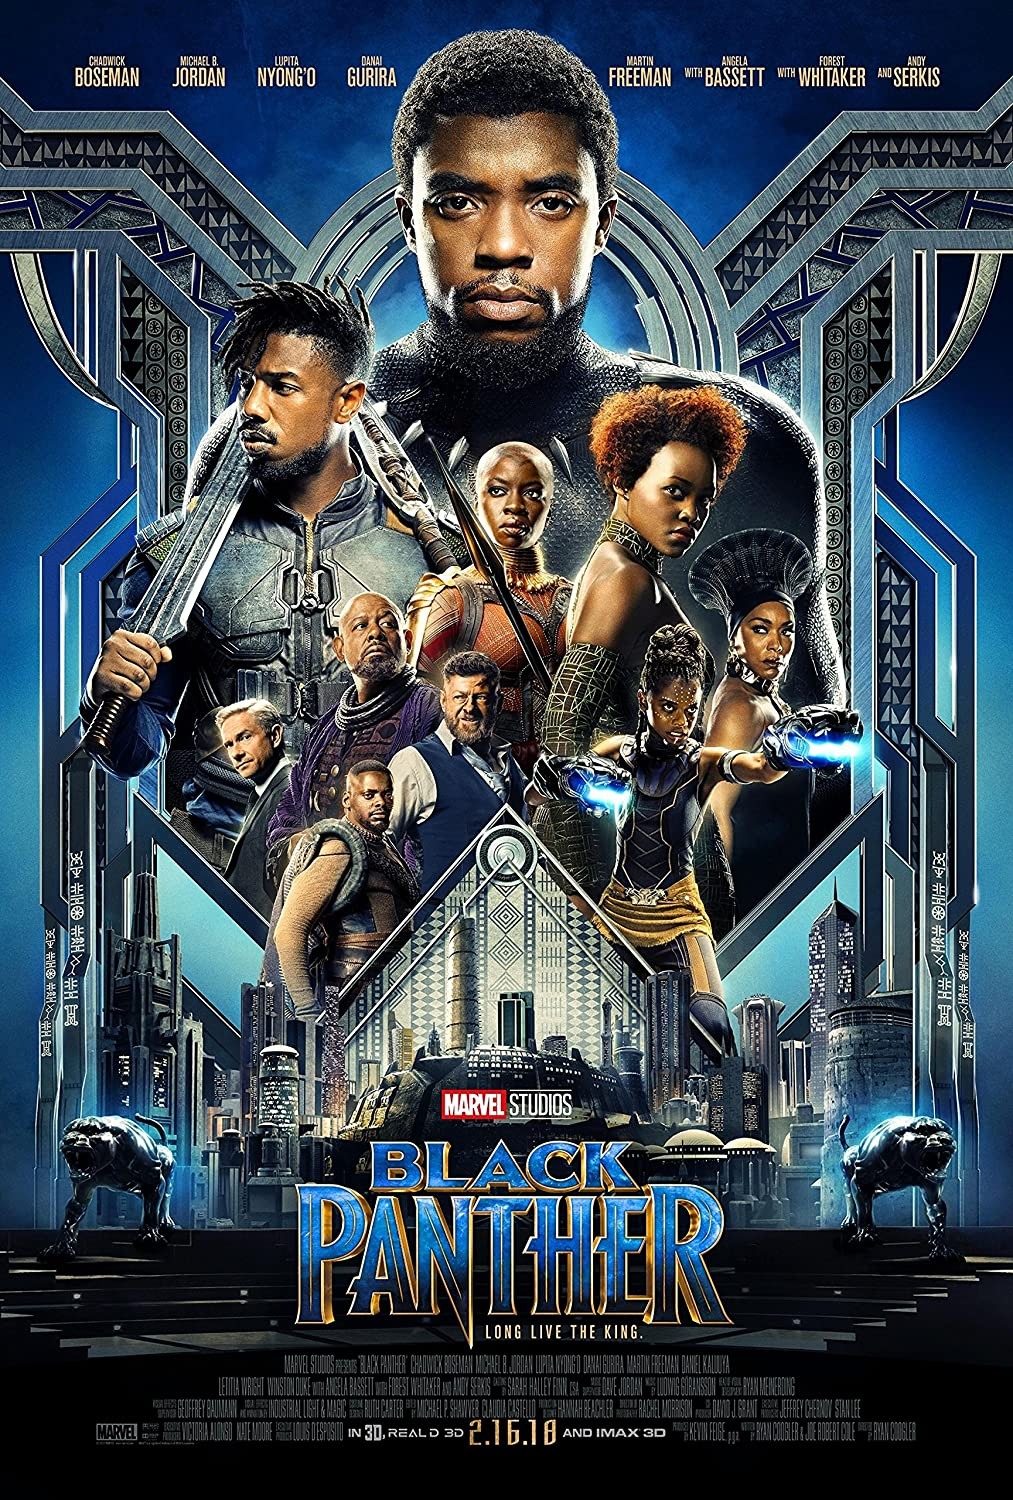 DVD cover showcasing Black Panther characters T'Challa, Killmonger, Nakia, Shuri, Okoye, & W'Kabi against the backdrop of the city of Wakanda.